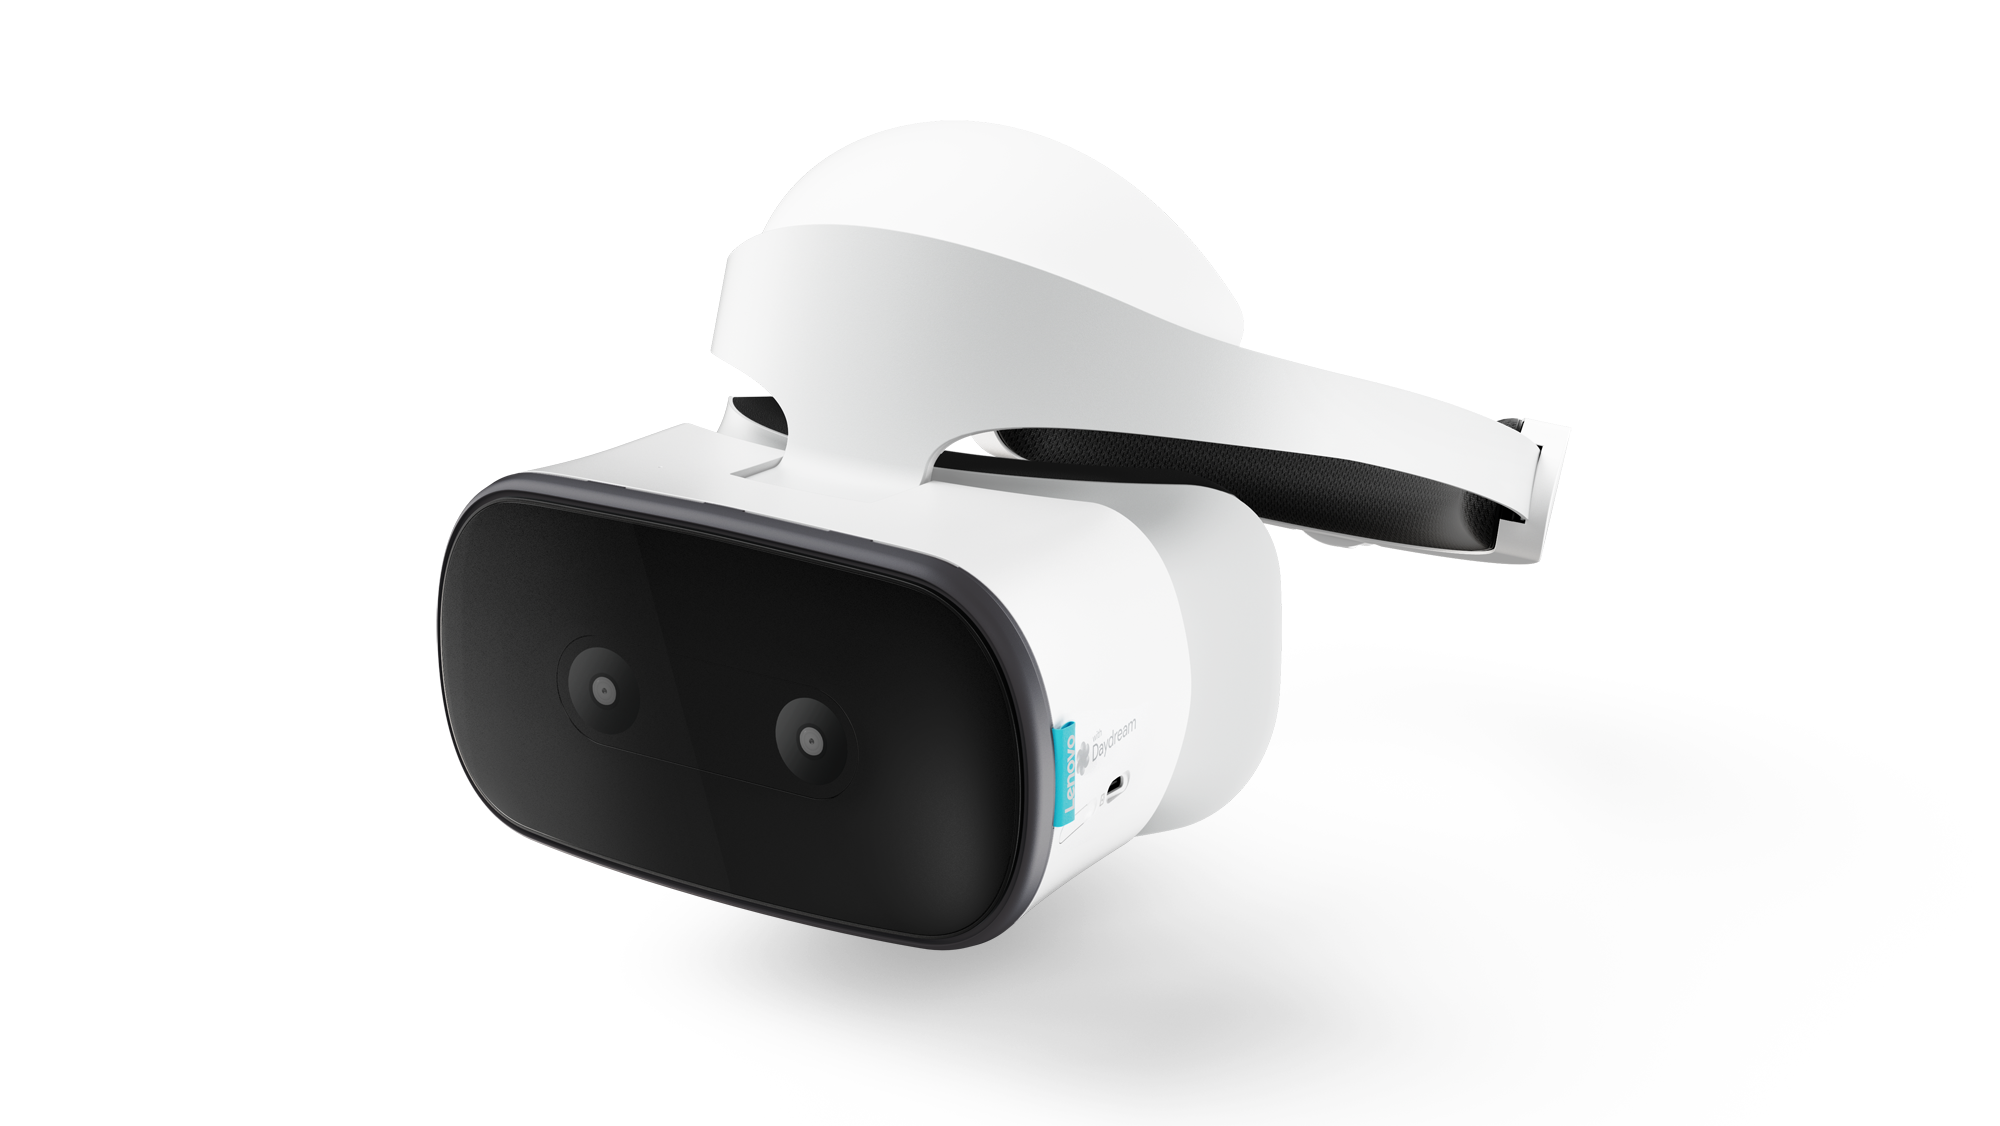 The Lenovo Mirage virtual reality headset